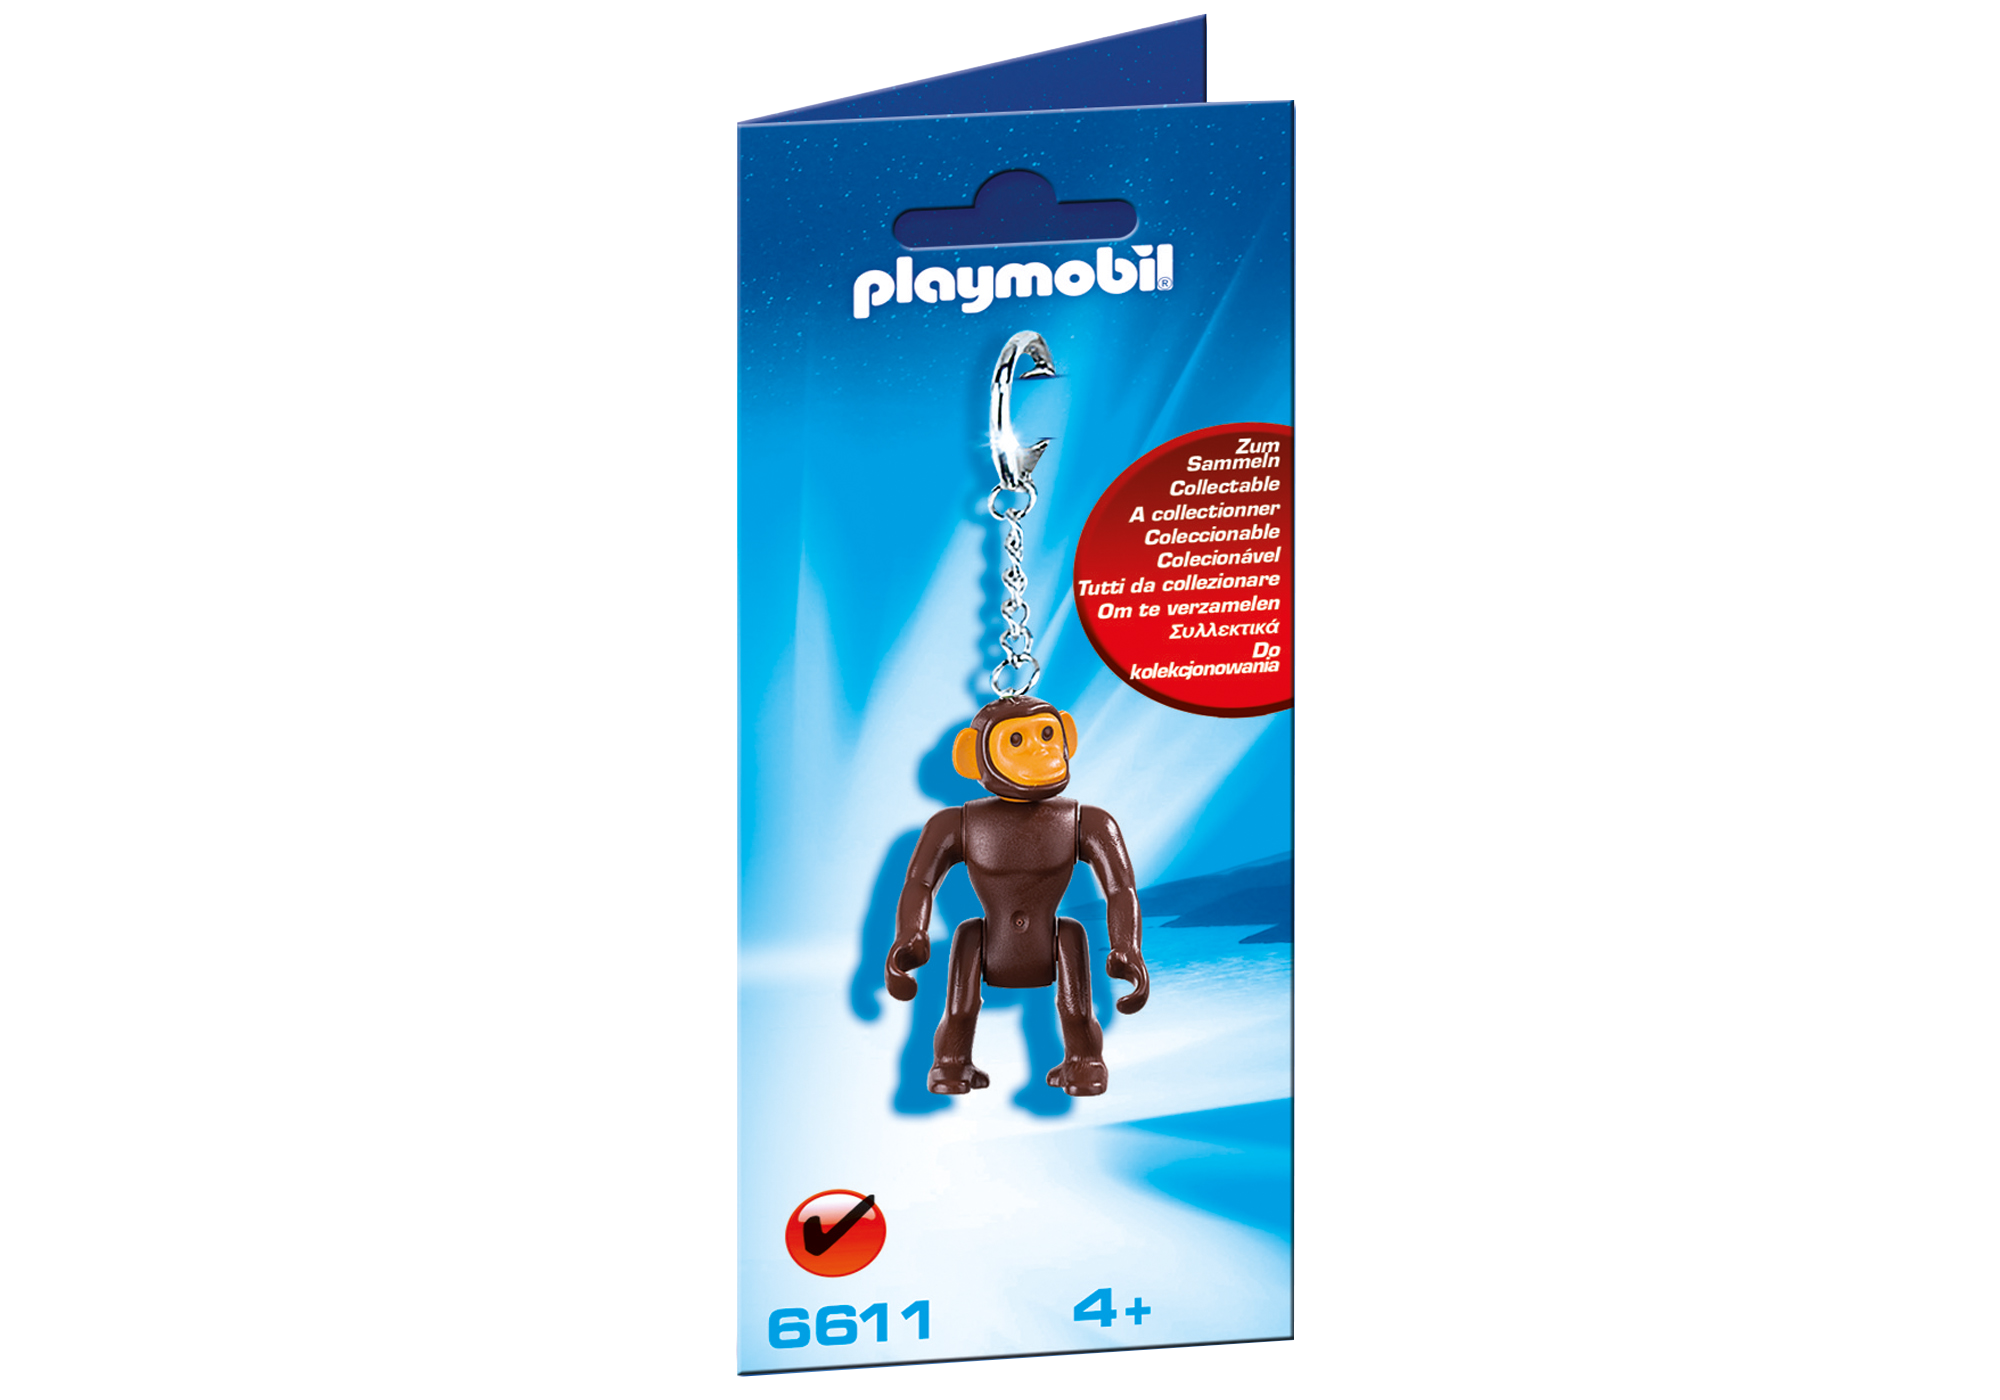 http://media.playmobil.com/i/playmobil/6611_product_box_front